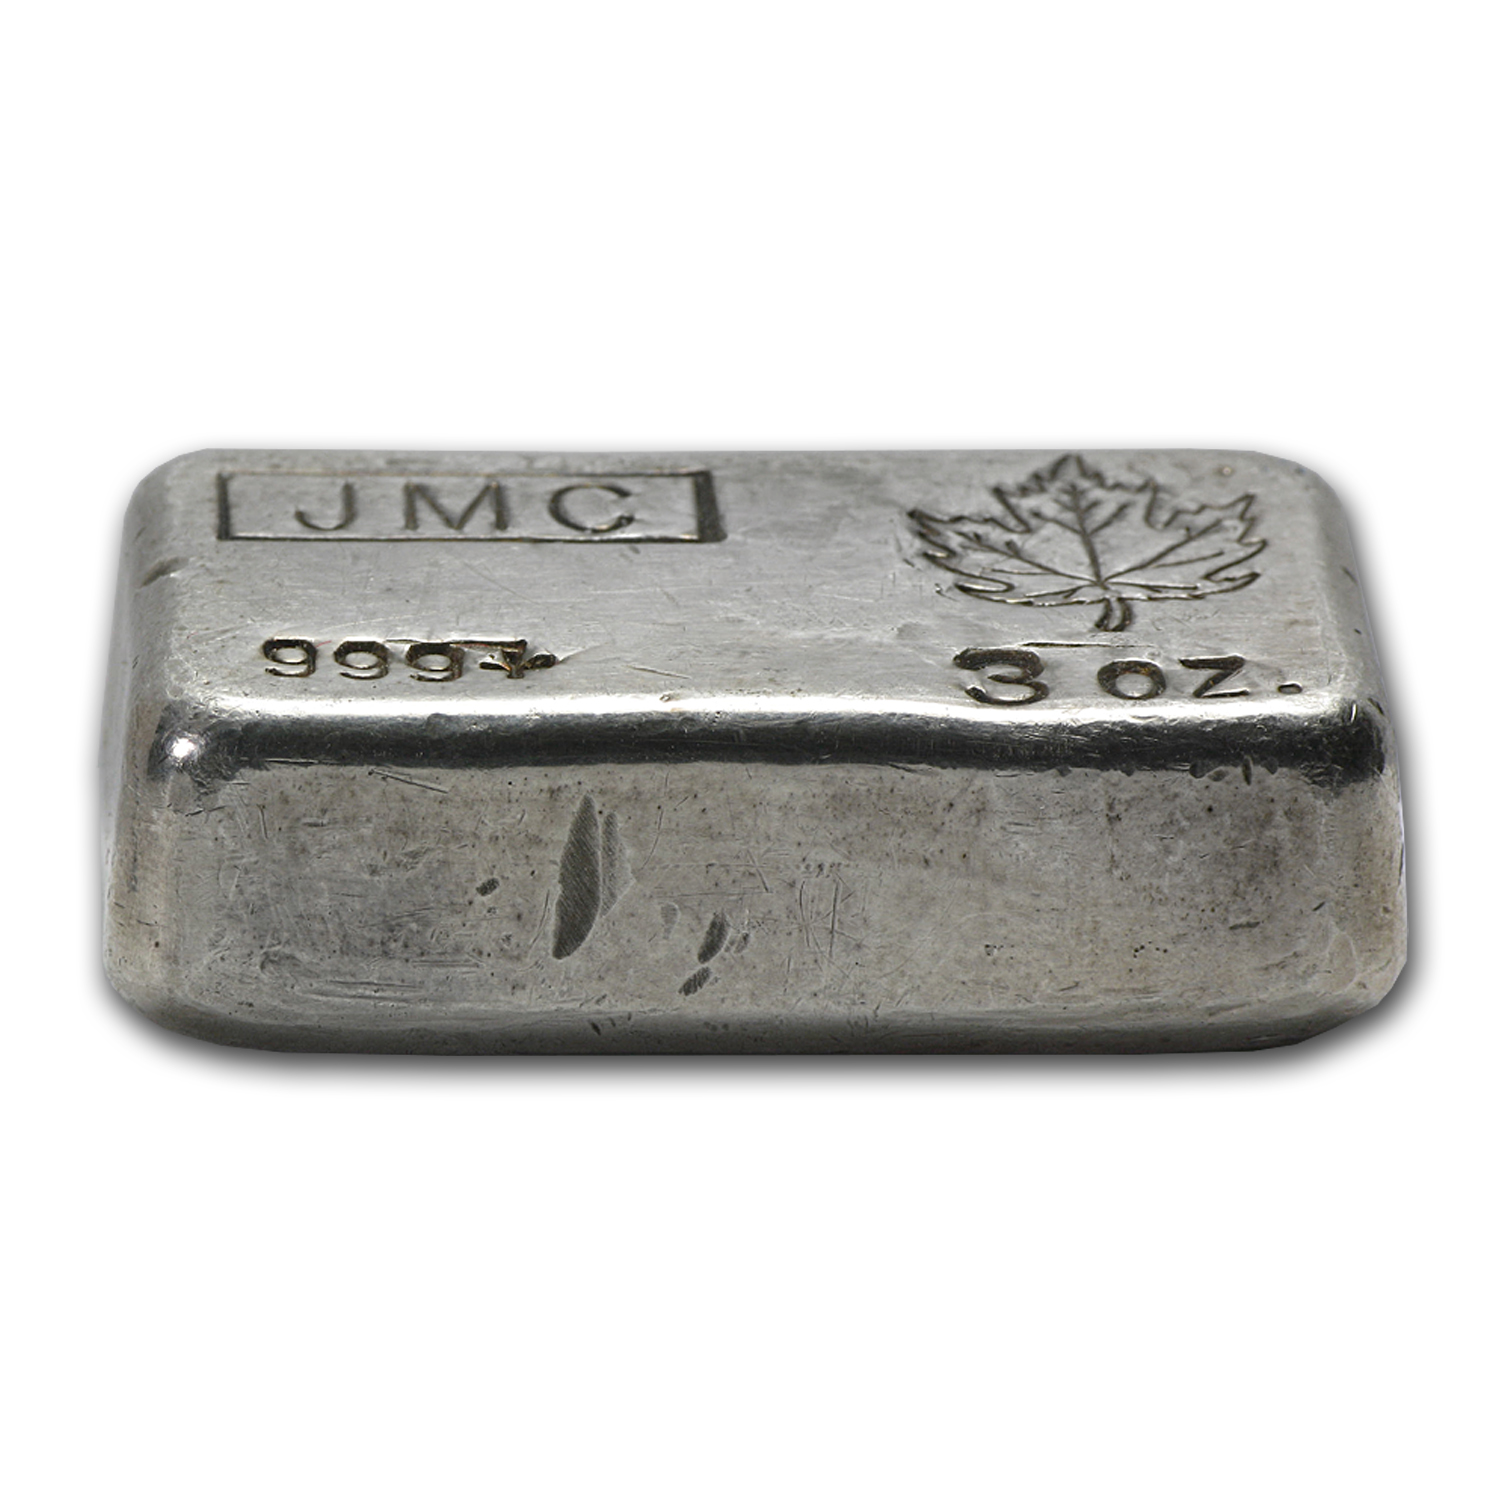 3 oz Silver Bars - Johnson Matthey (Poured/Canada)